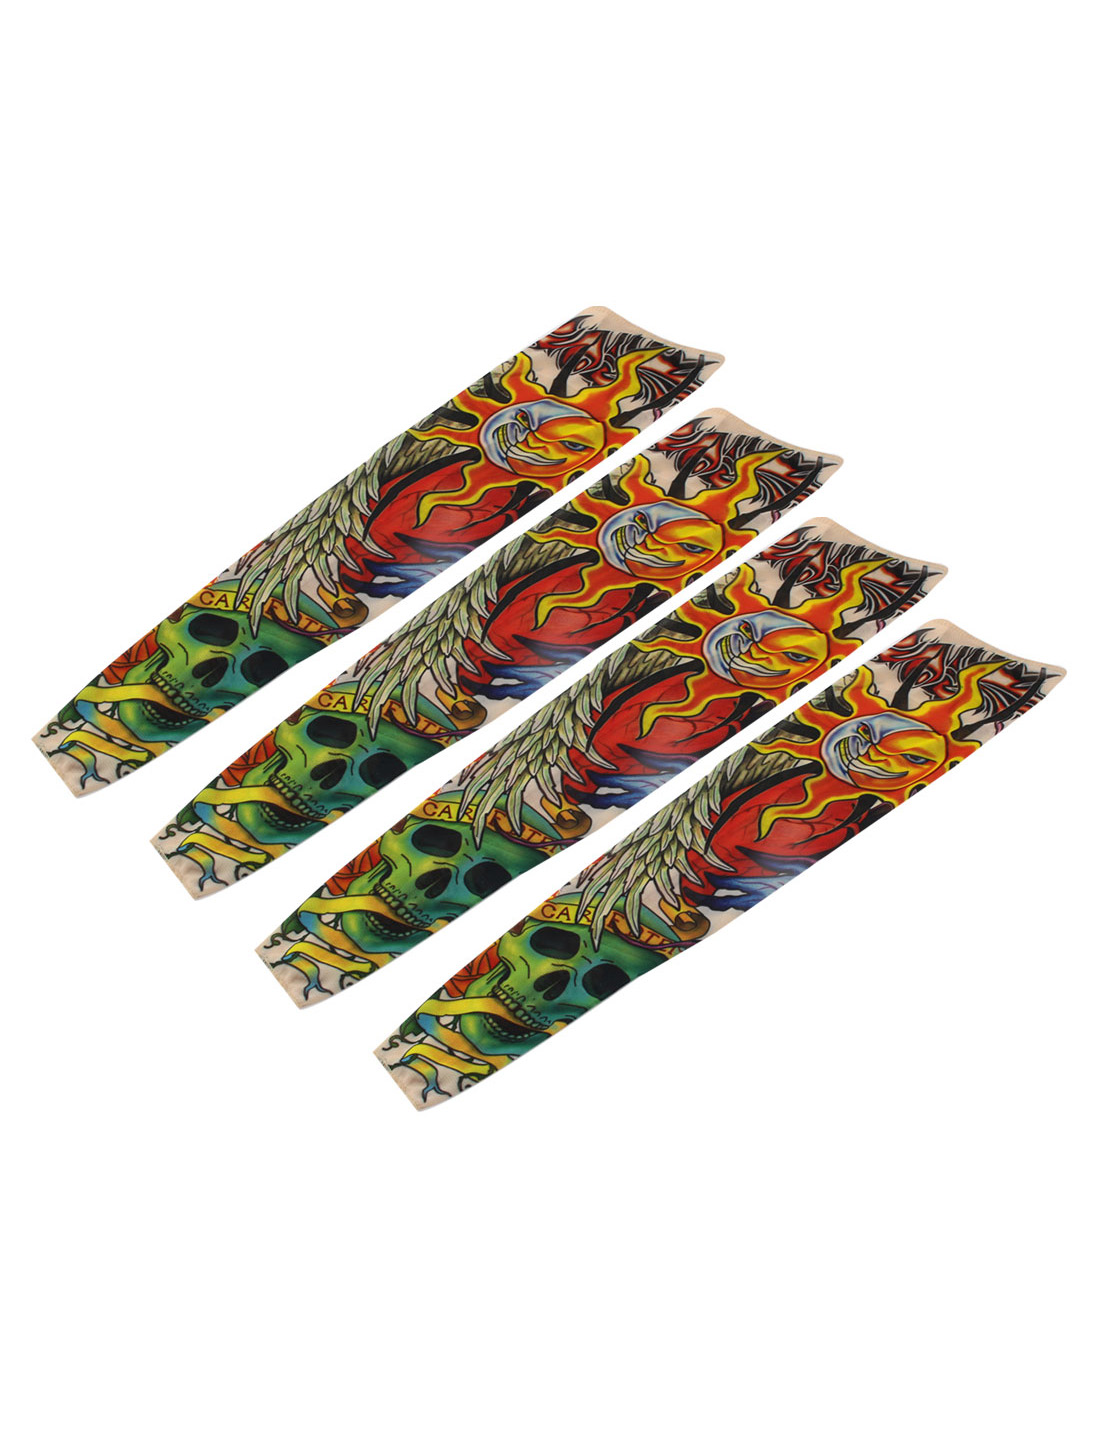 Outdoor Nylon Fire Print Elastic Fake Body Art Tattoo Sleeves Arm Stockings 2 Pairs